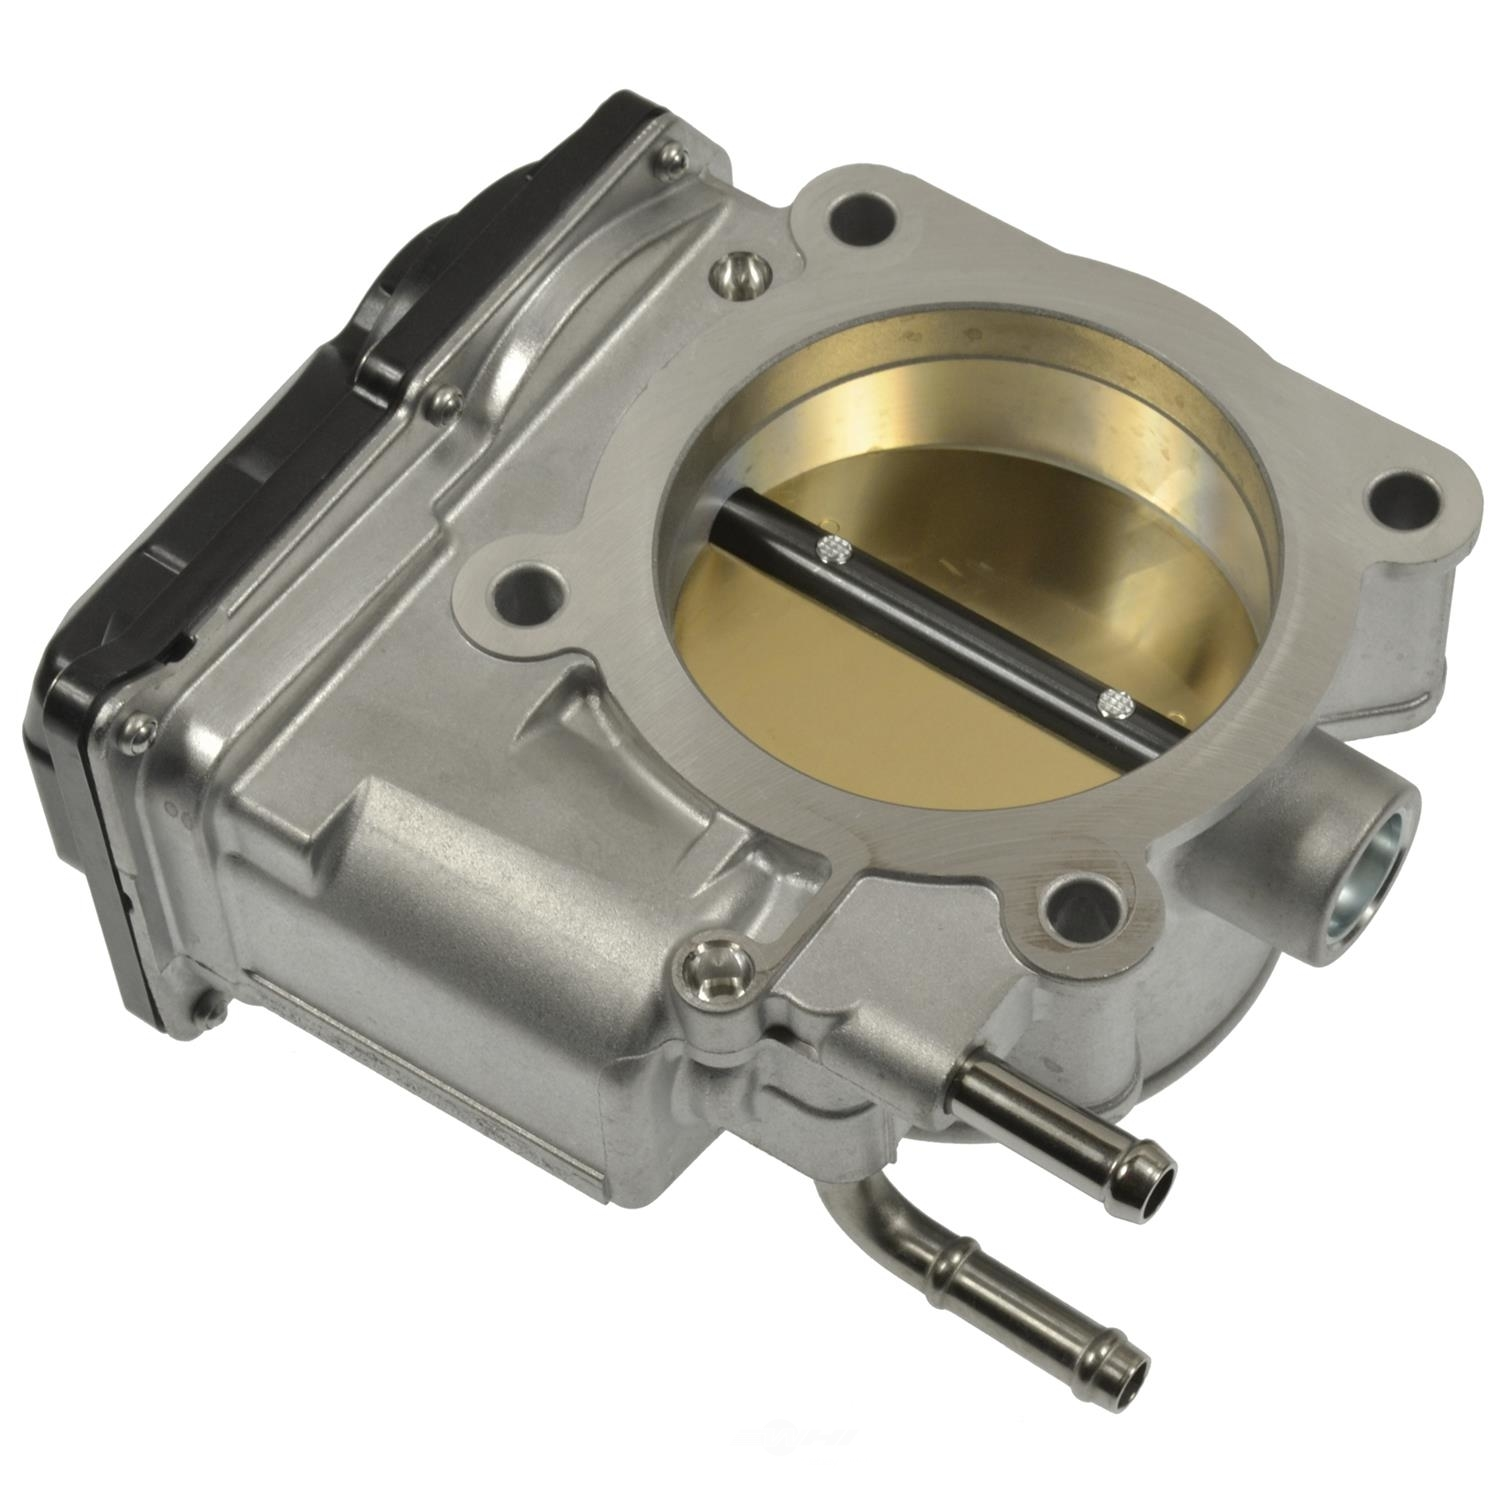 TECHSMART - Fuel Injection Throttle Body - TCS S20131